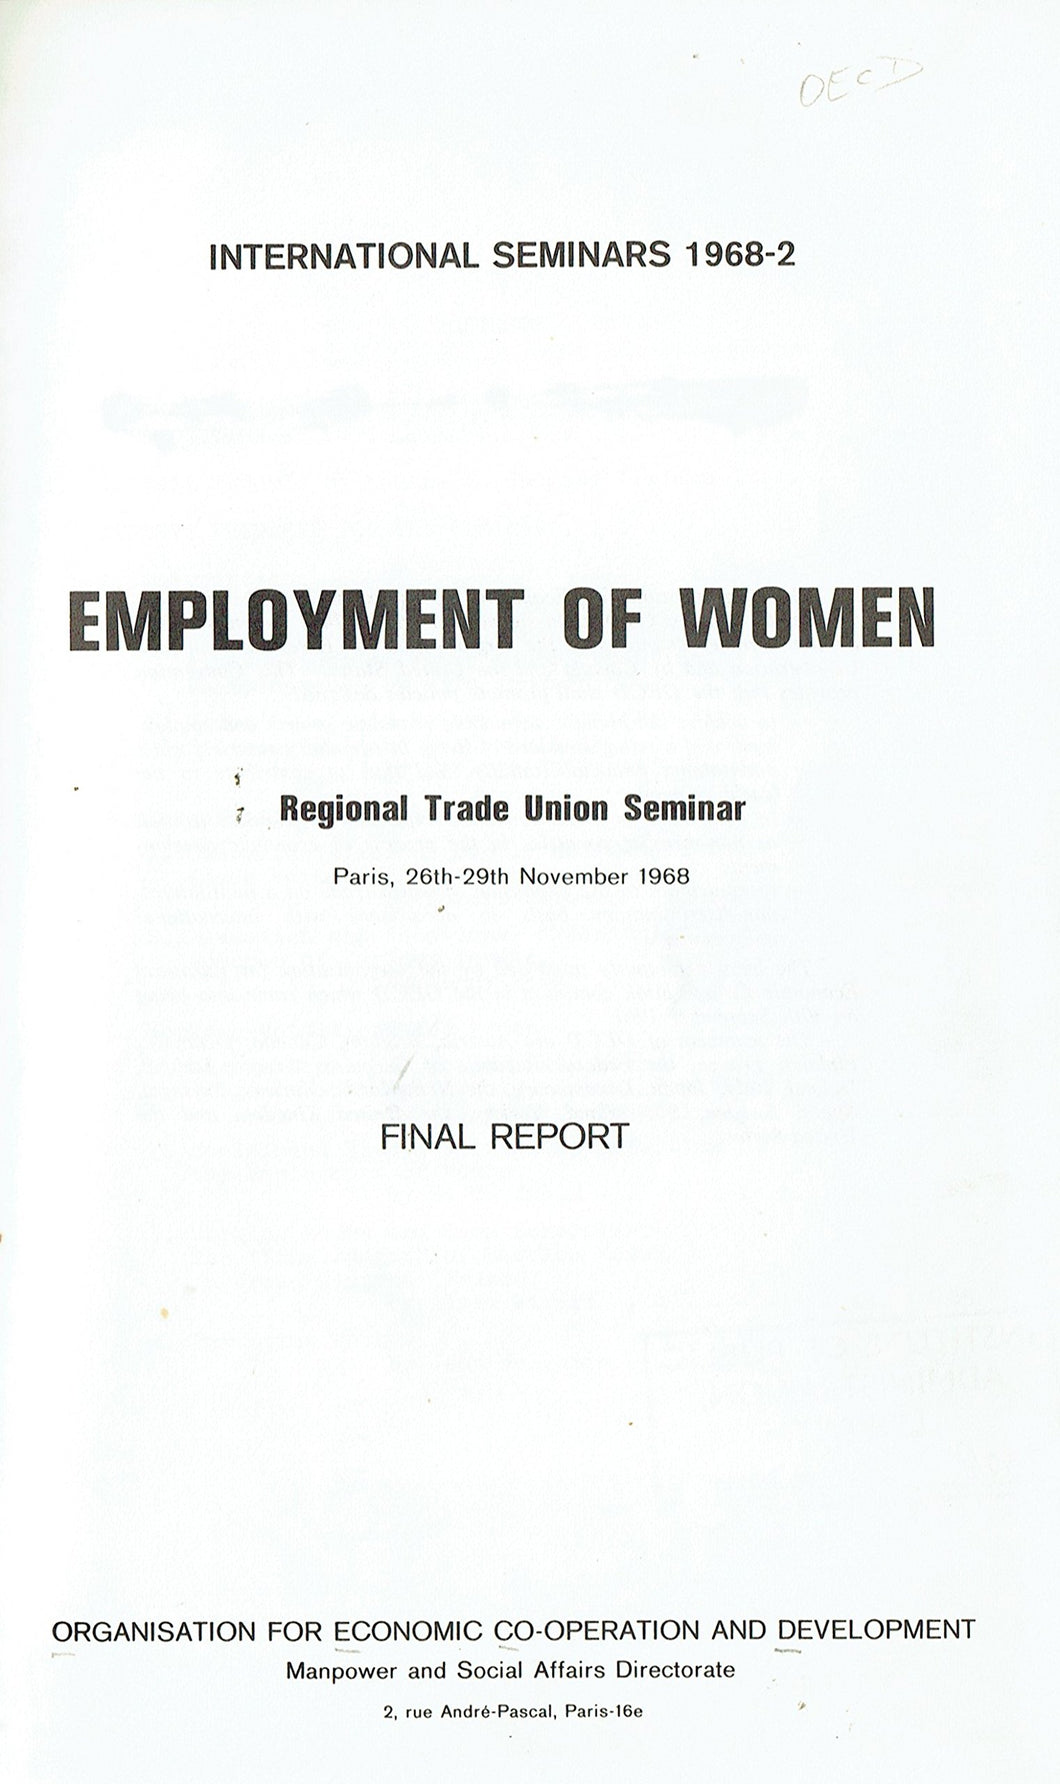 Employment of Women: Regional Trade Union Seminar, Paris, 26th-29th November 1968 - Final Report - International Seminars 1968-2